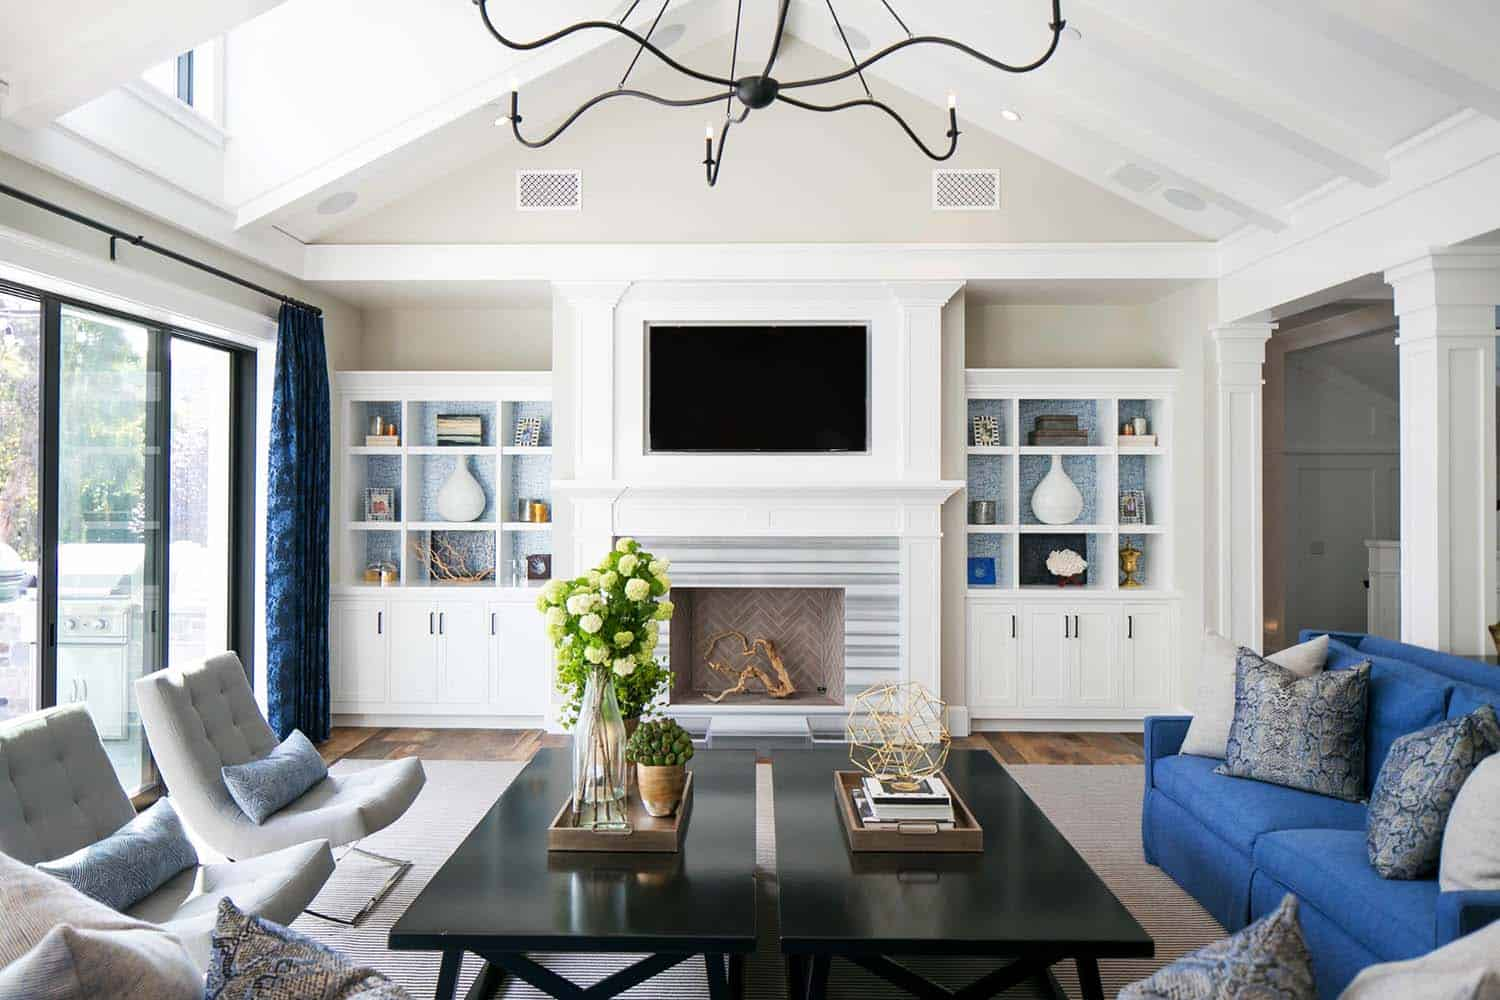 beach-style-home-brooke-wagner-design-04-1-kindesign